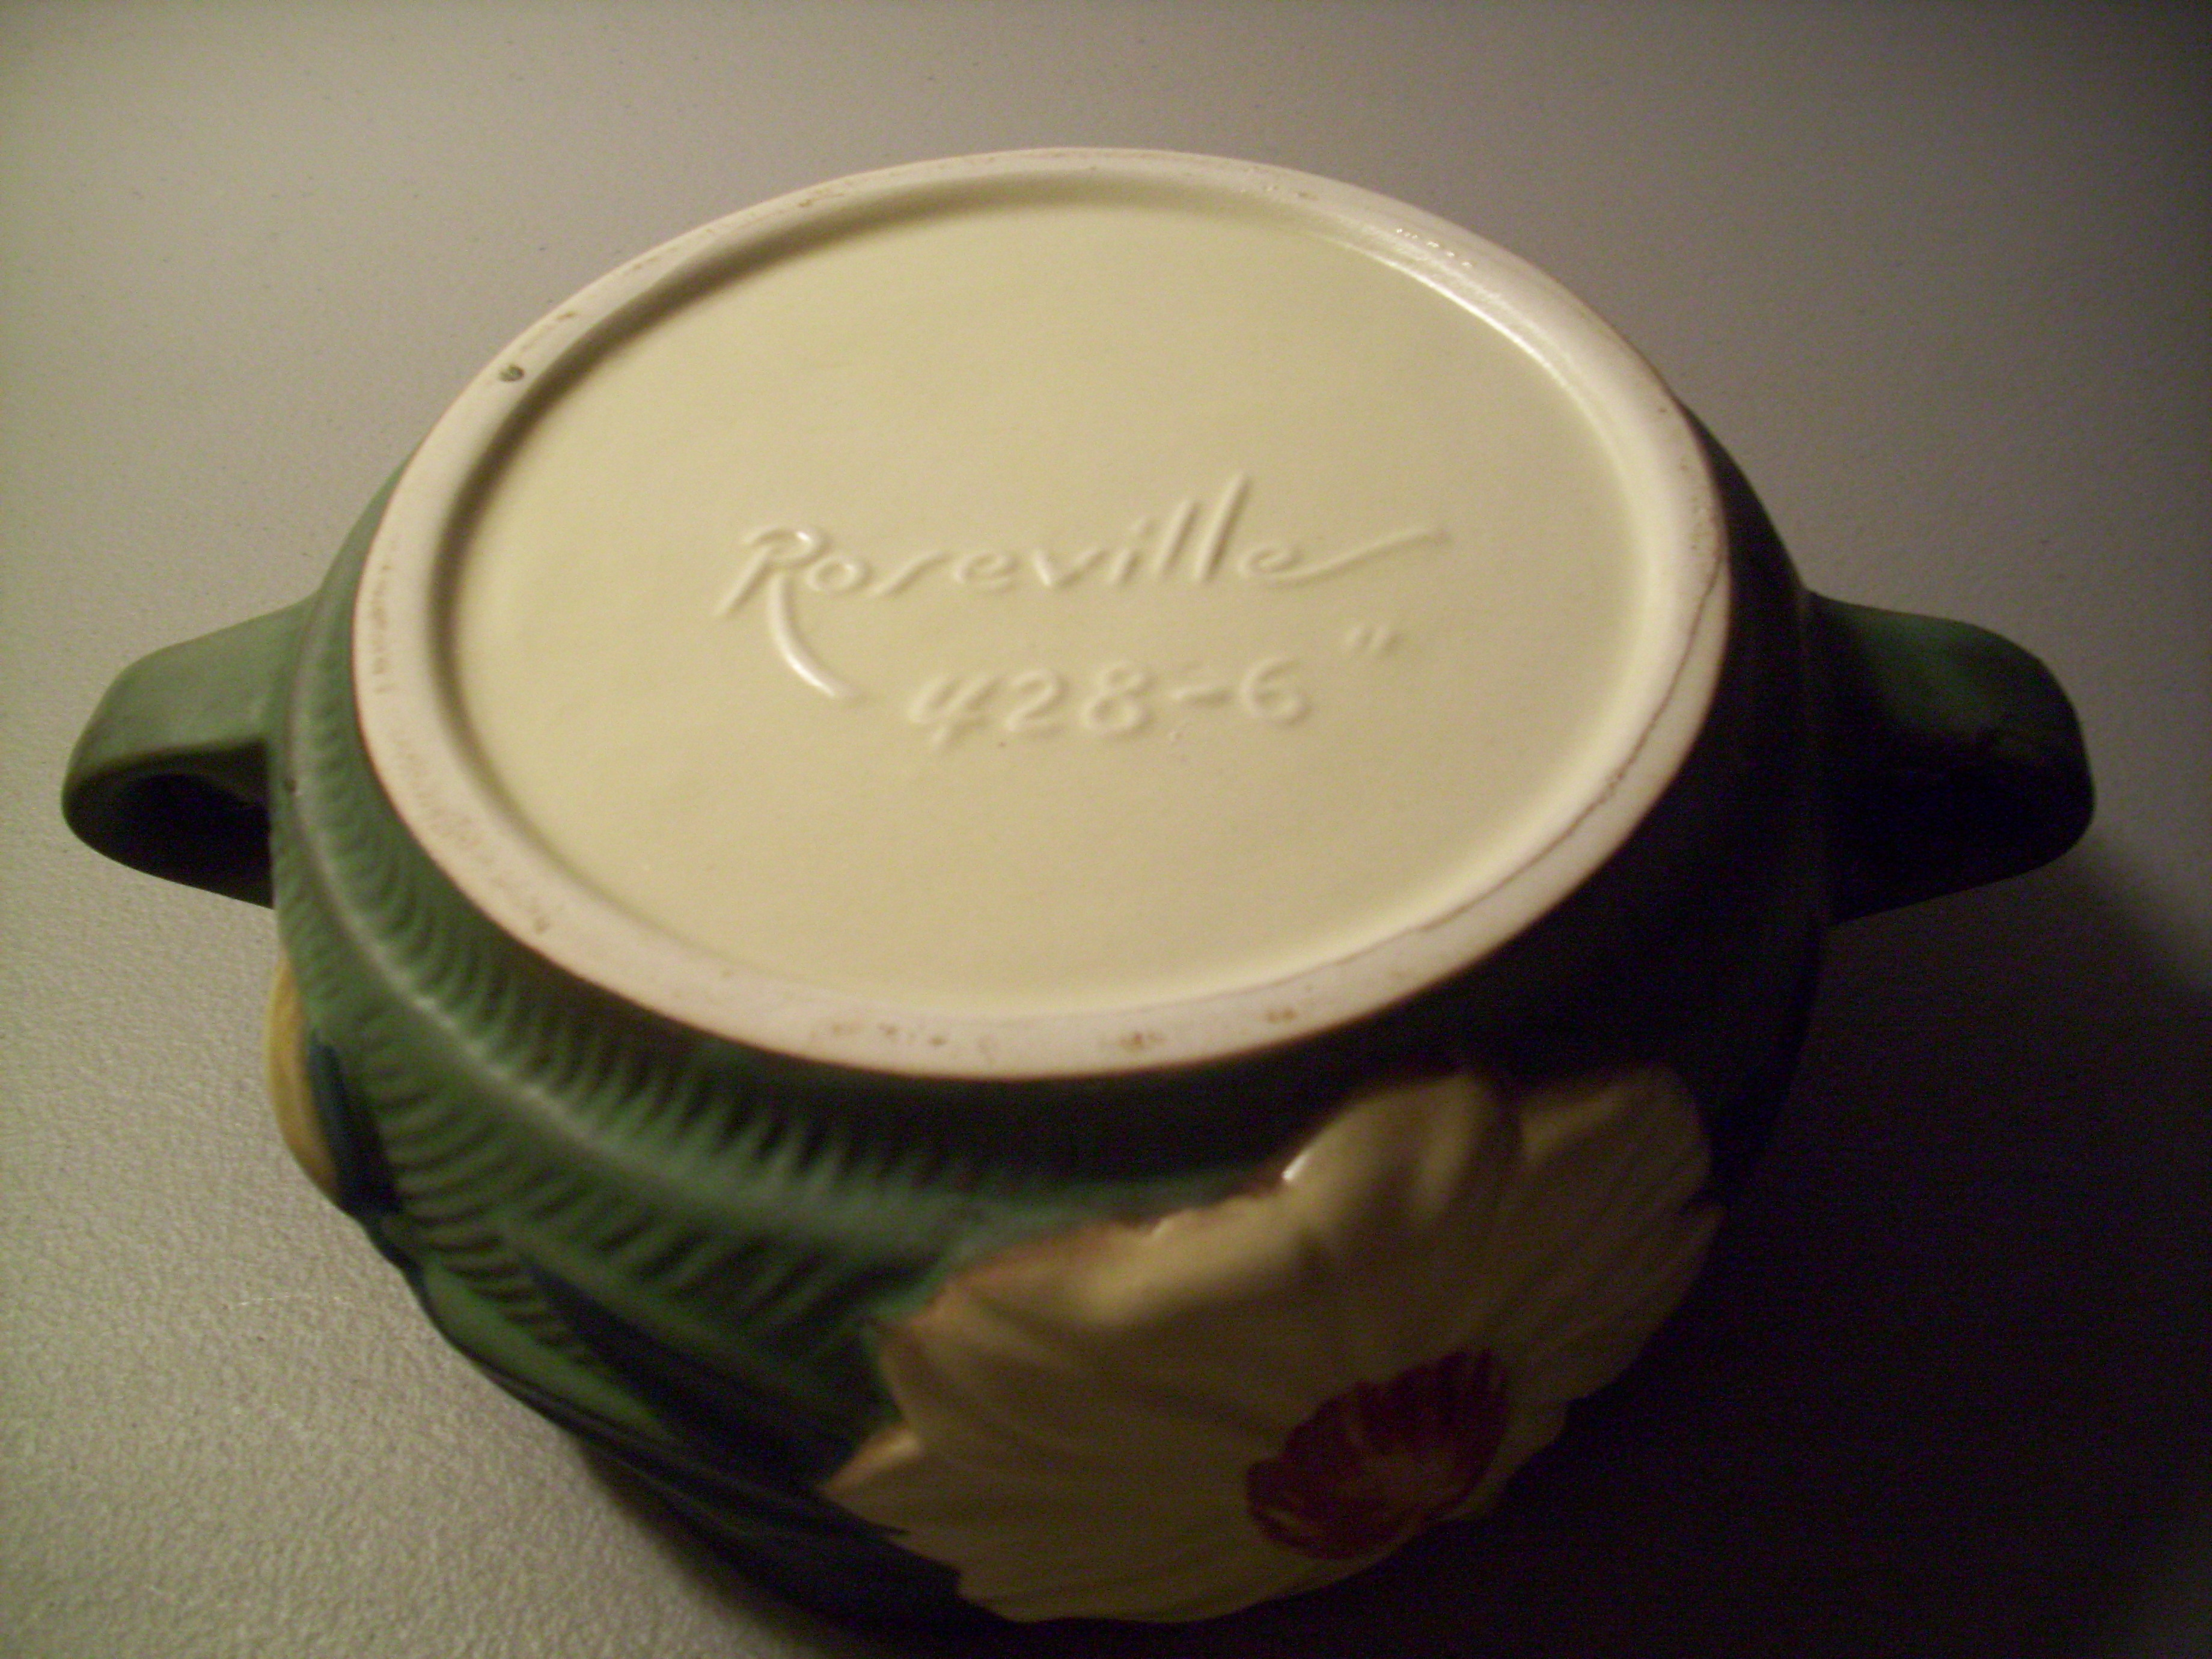 Roseville Pottery - Collection of fakes? - The eBay Community